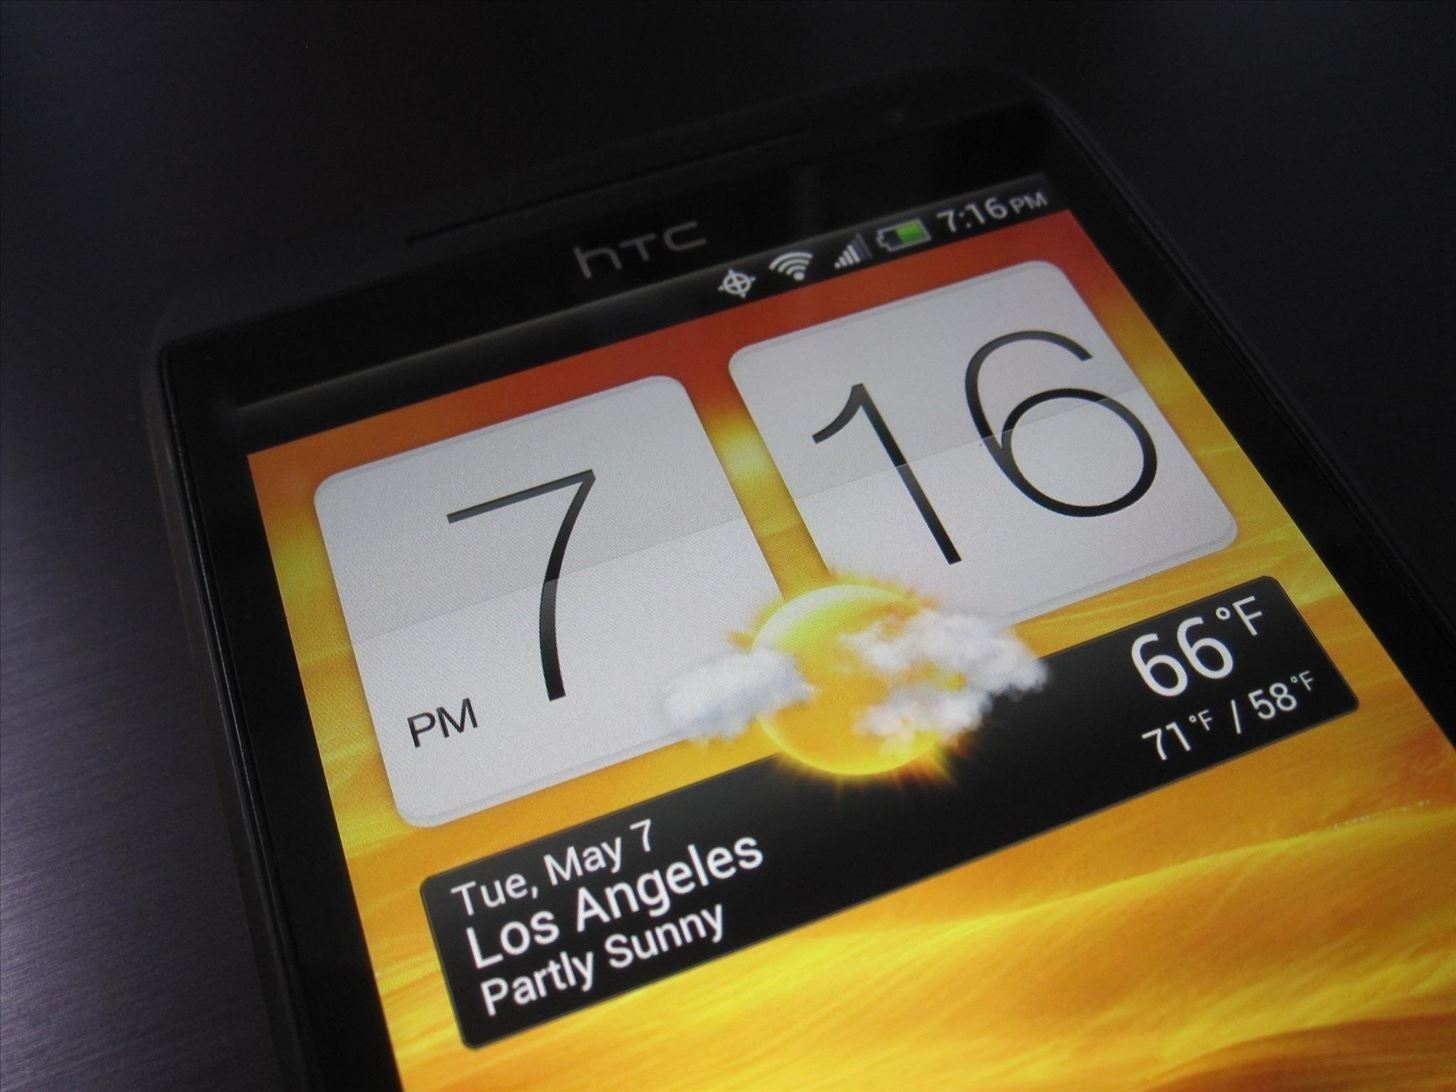 How to Root Your HTC EVO 4G LTE Using TWRP & SuperSU